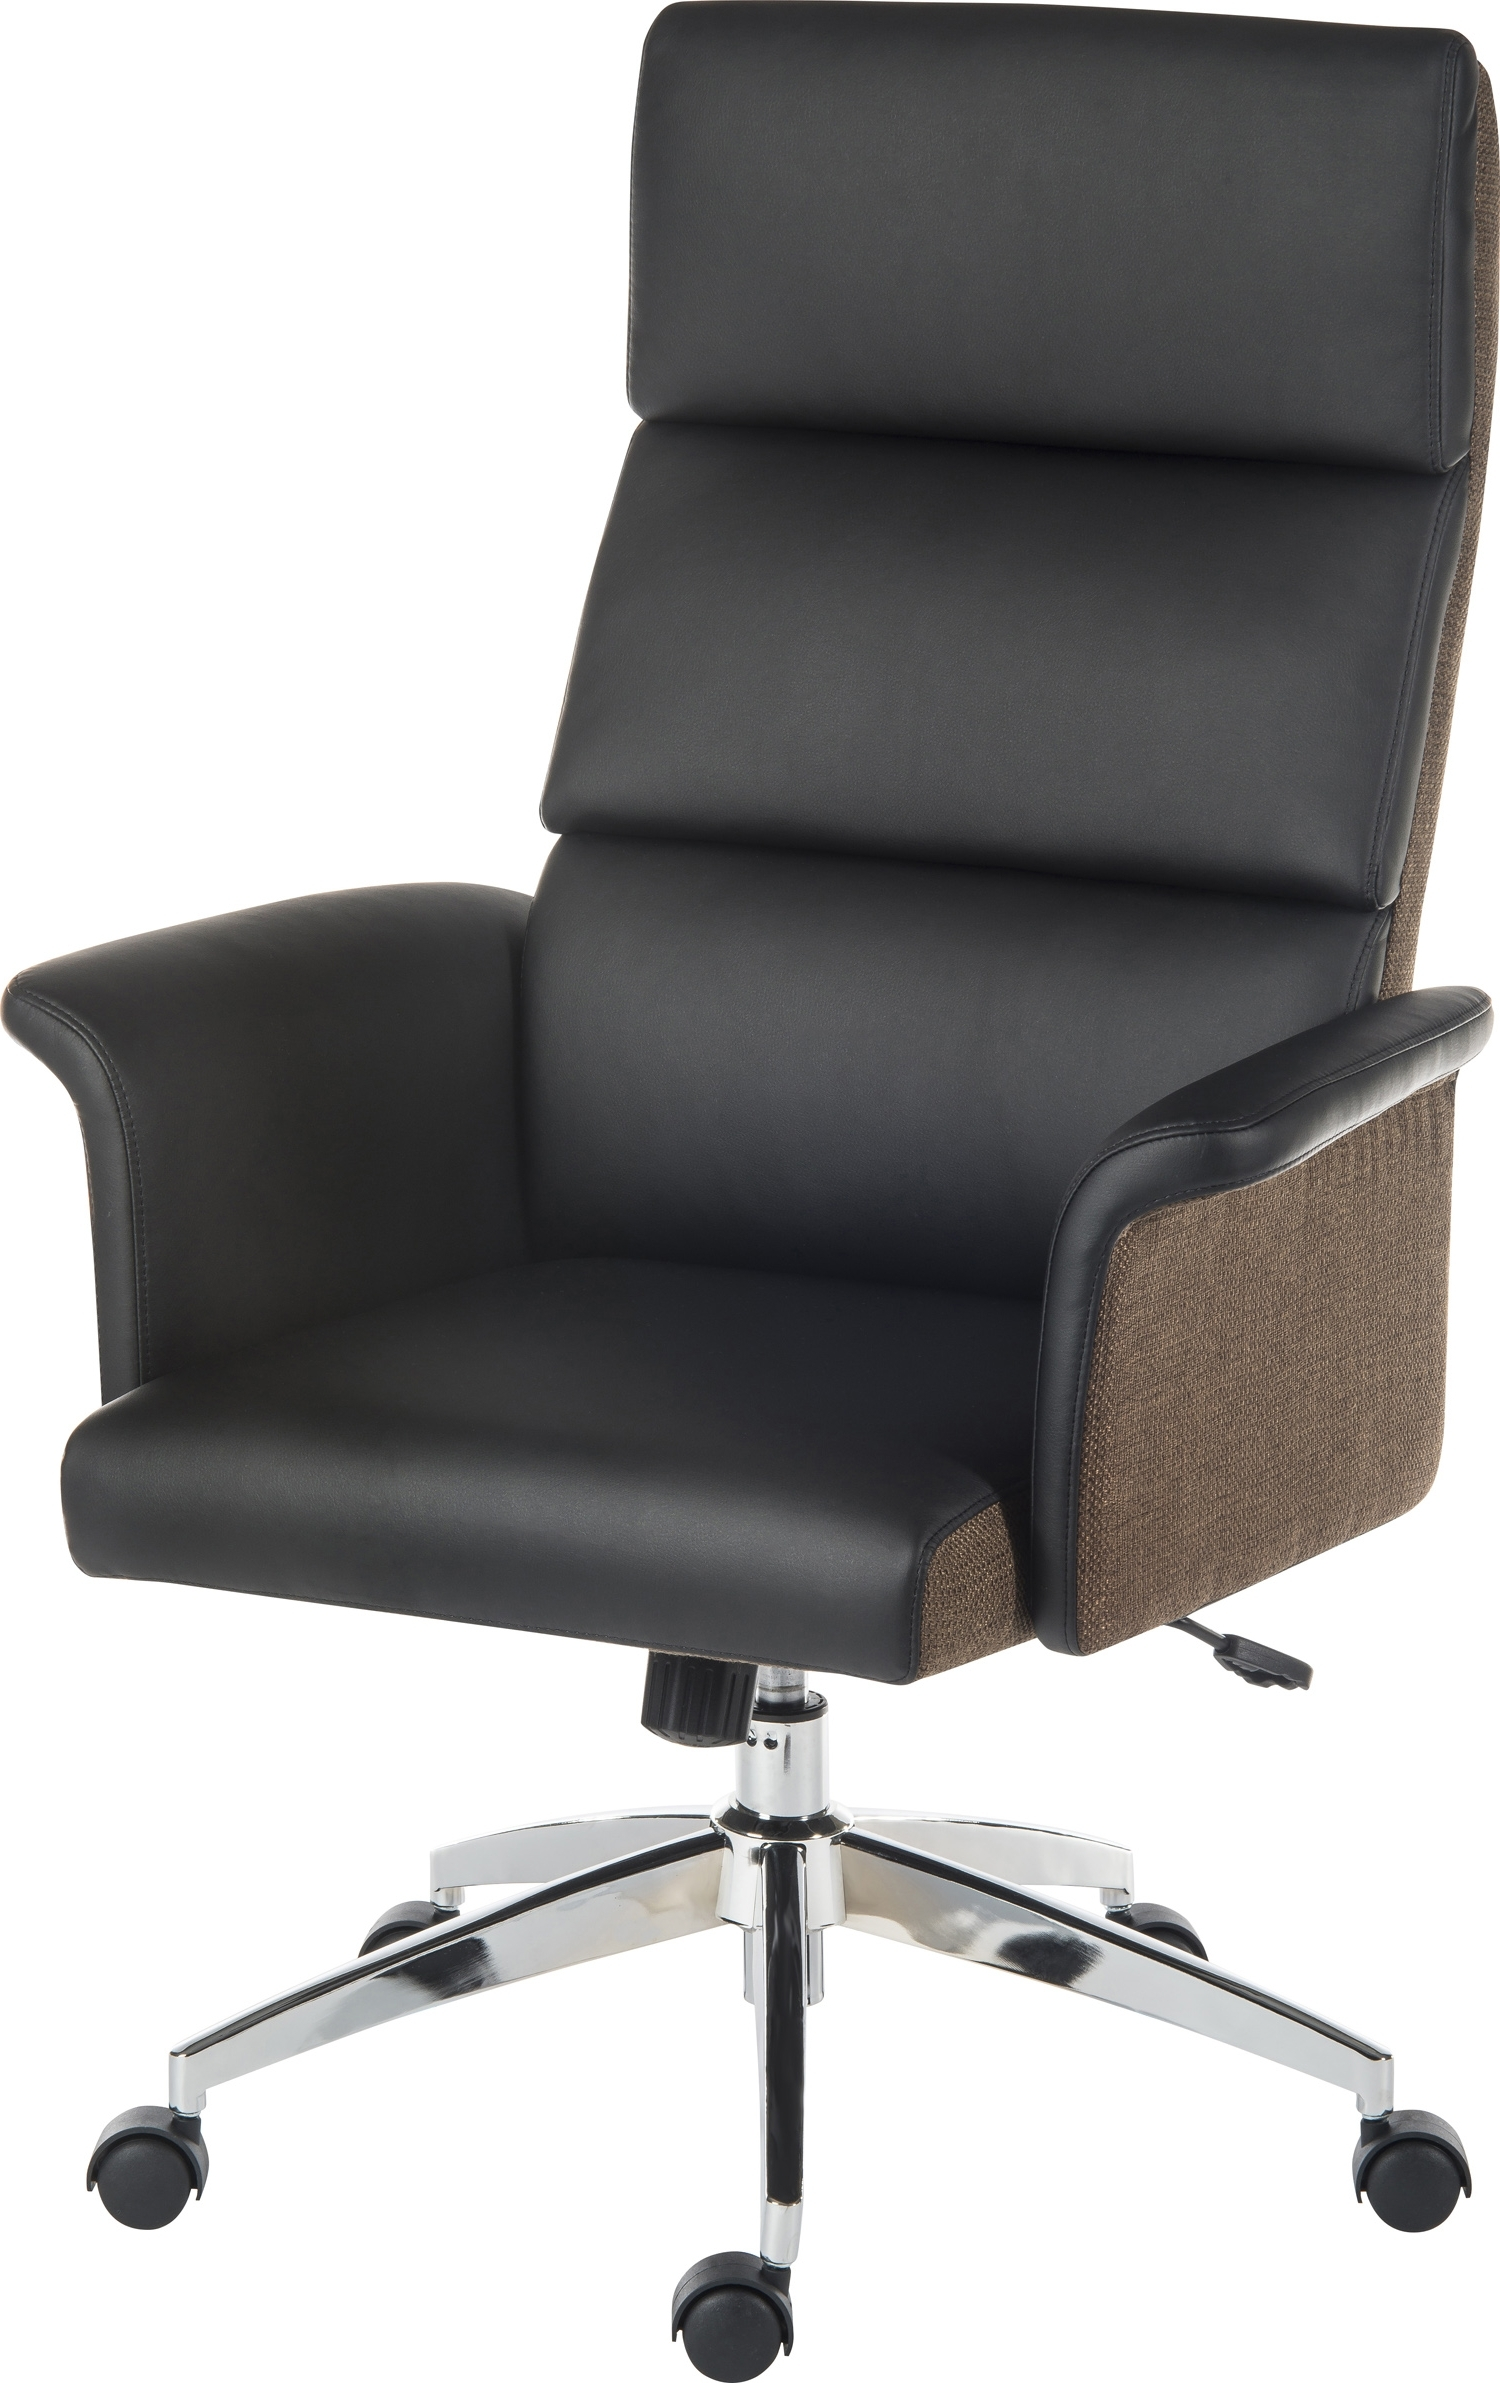 Most Recent Elegance High Backed Retro Executive Office Chair Black (View 12 of 20)